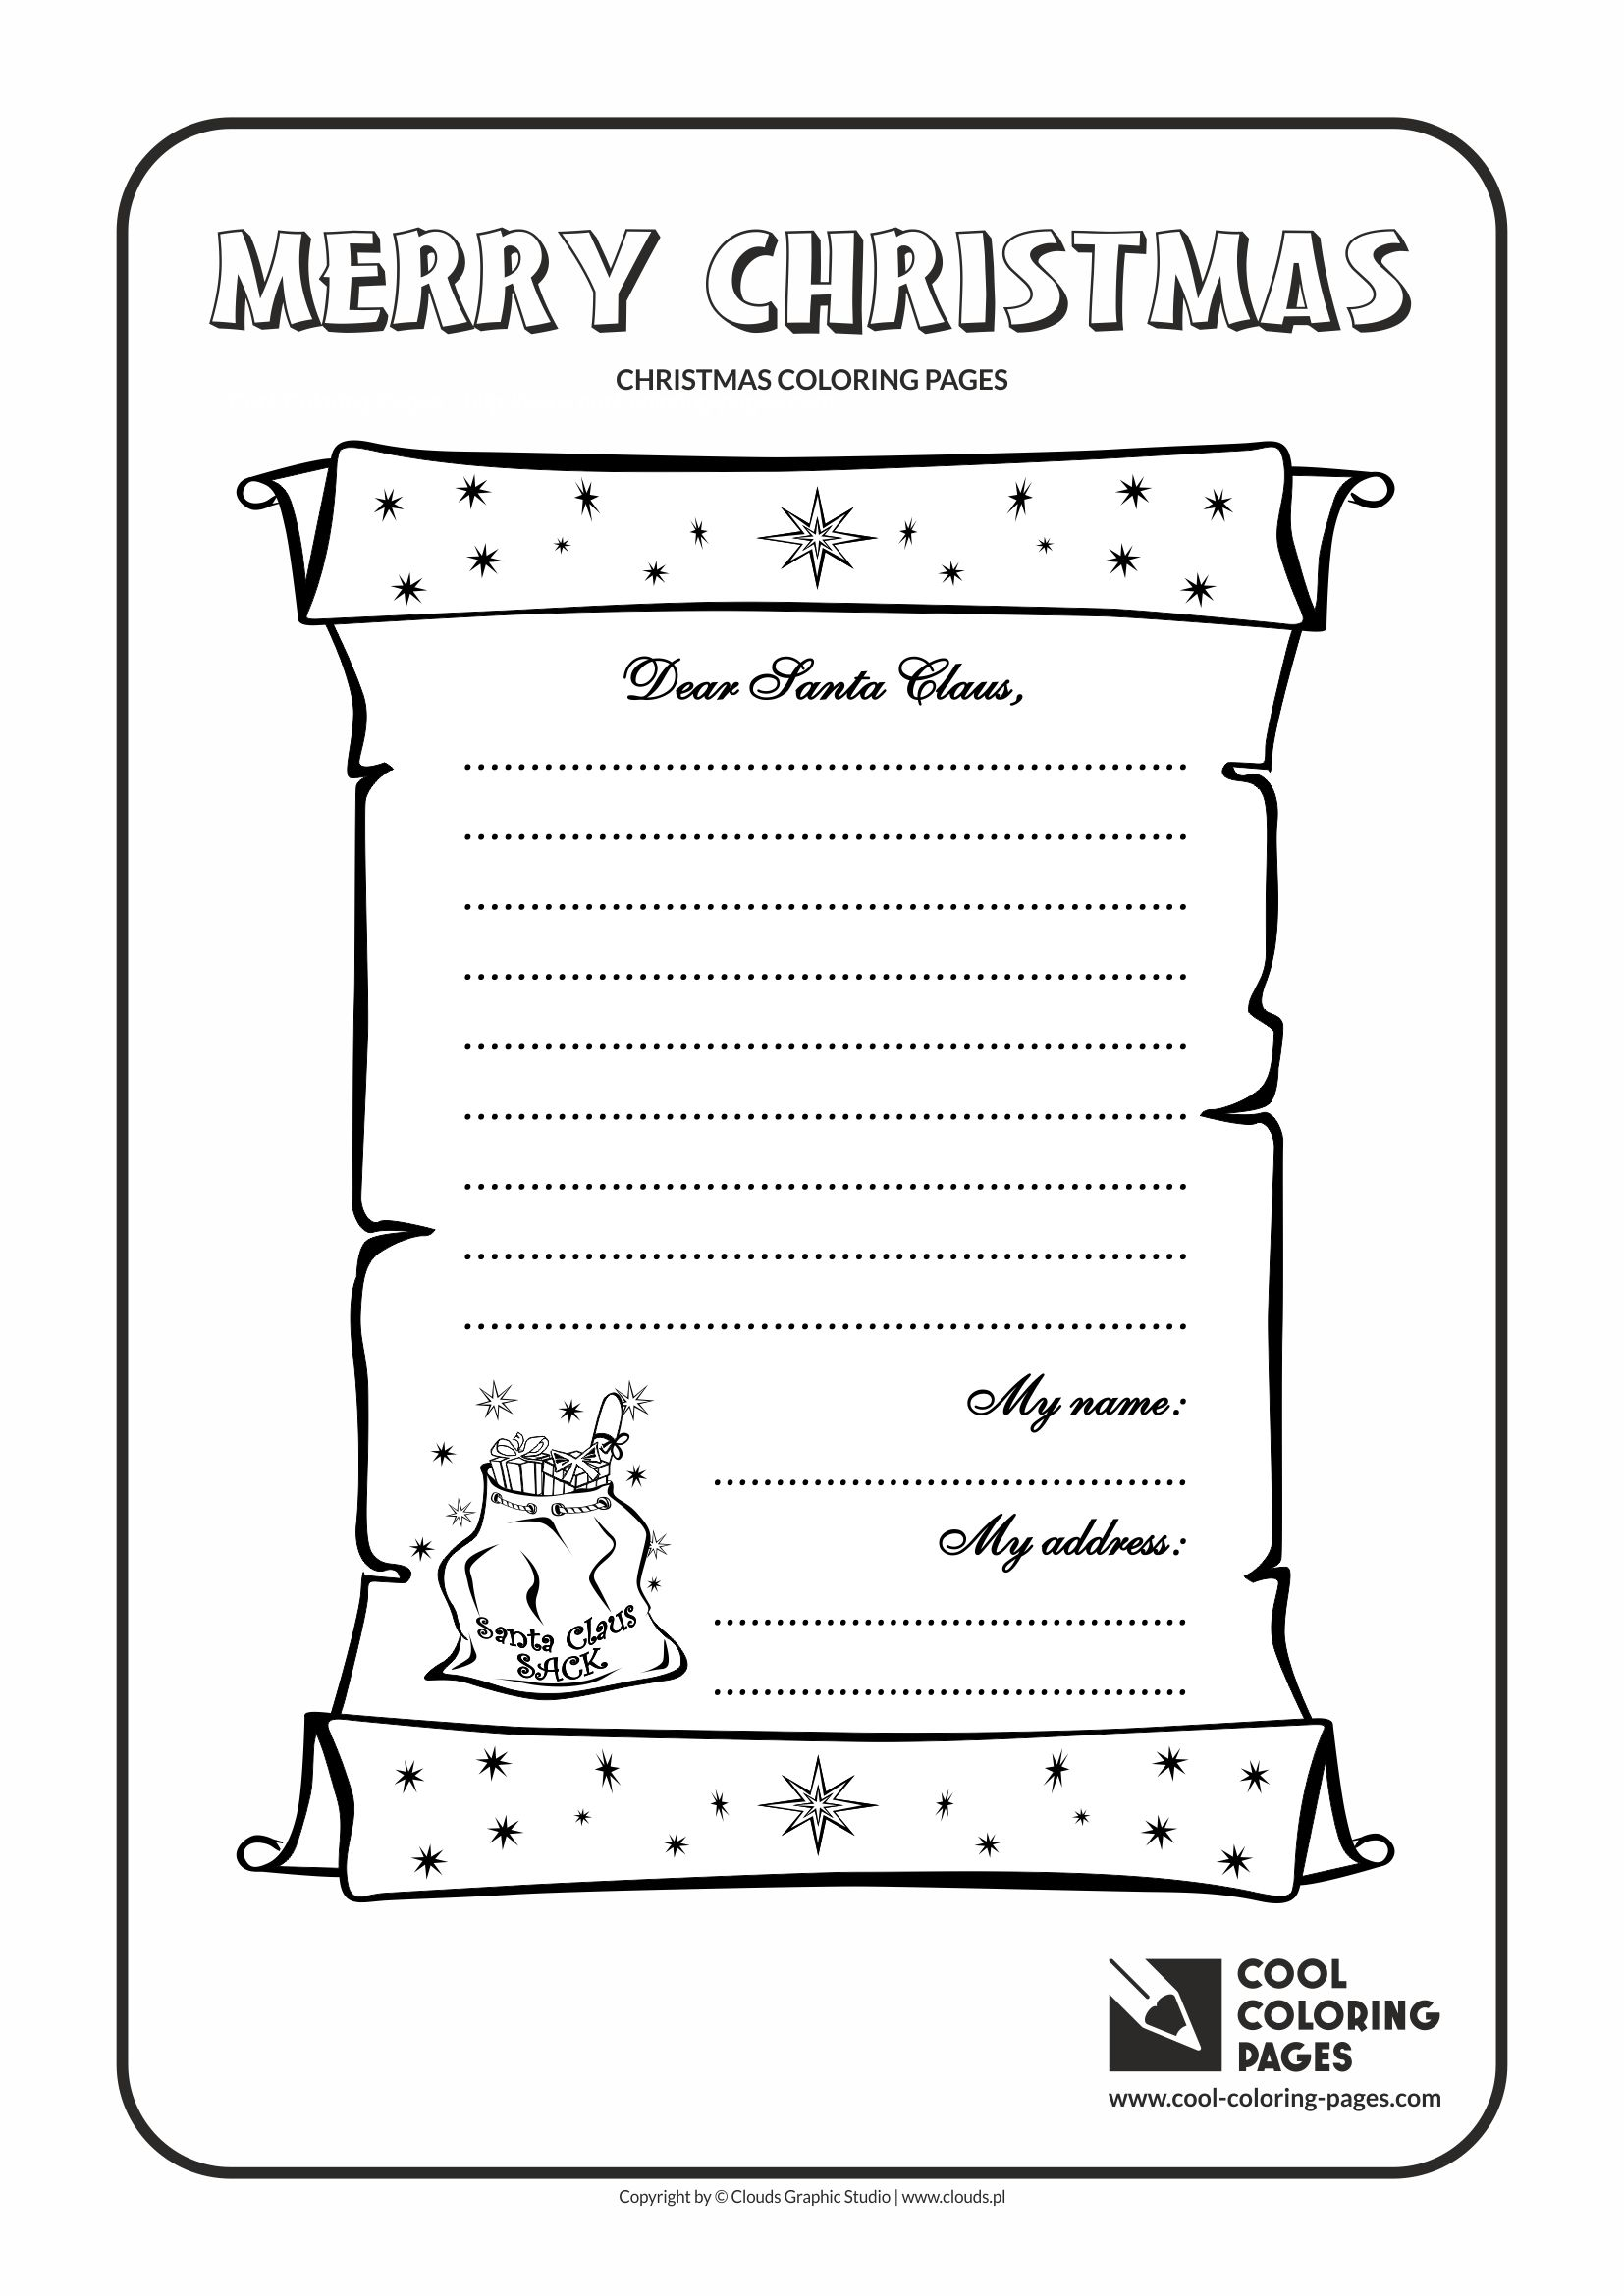 cool coloring pages holidays letter to santa claus no 1 coloring page with